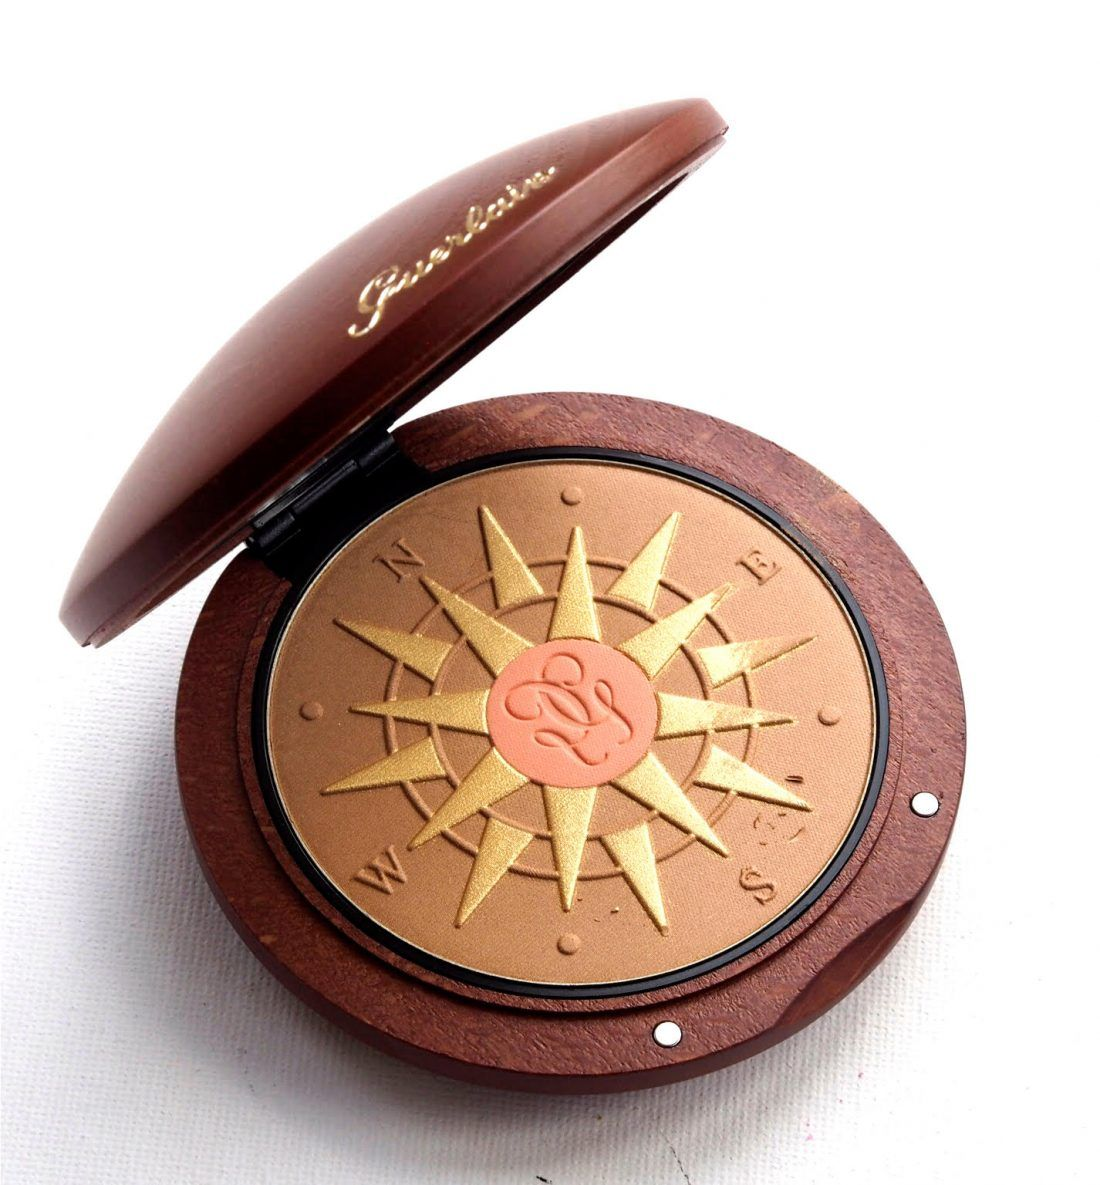 Guerlain Terracotta Summer Make Up 2018 | Guerlain makeup ...